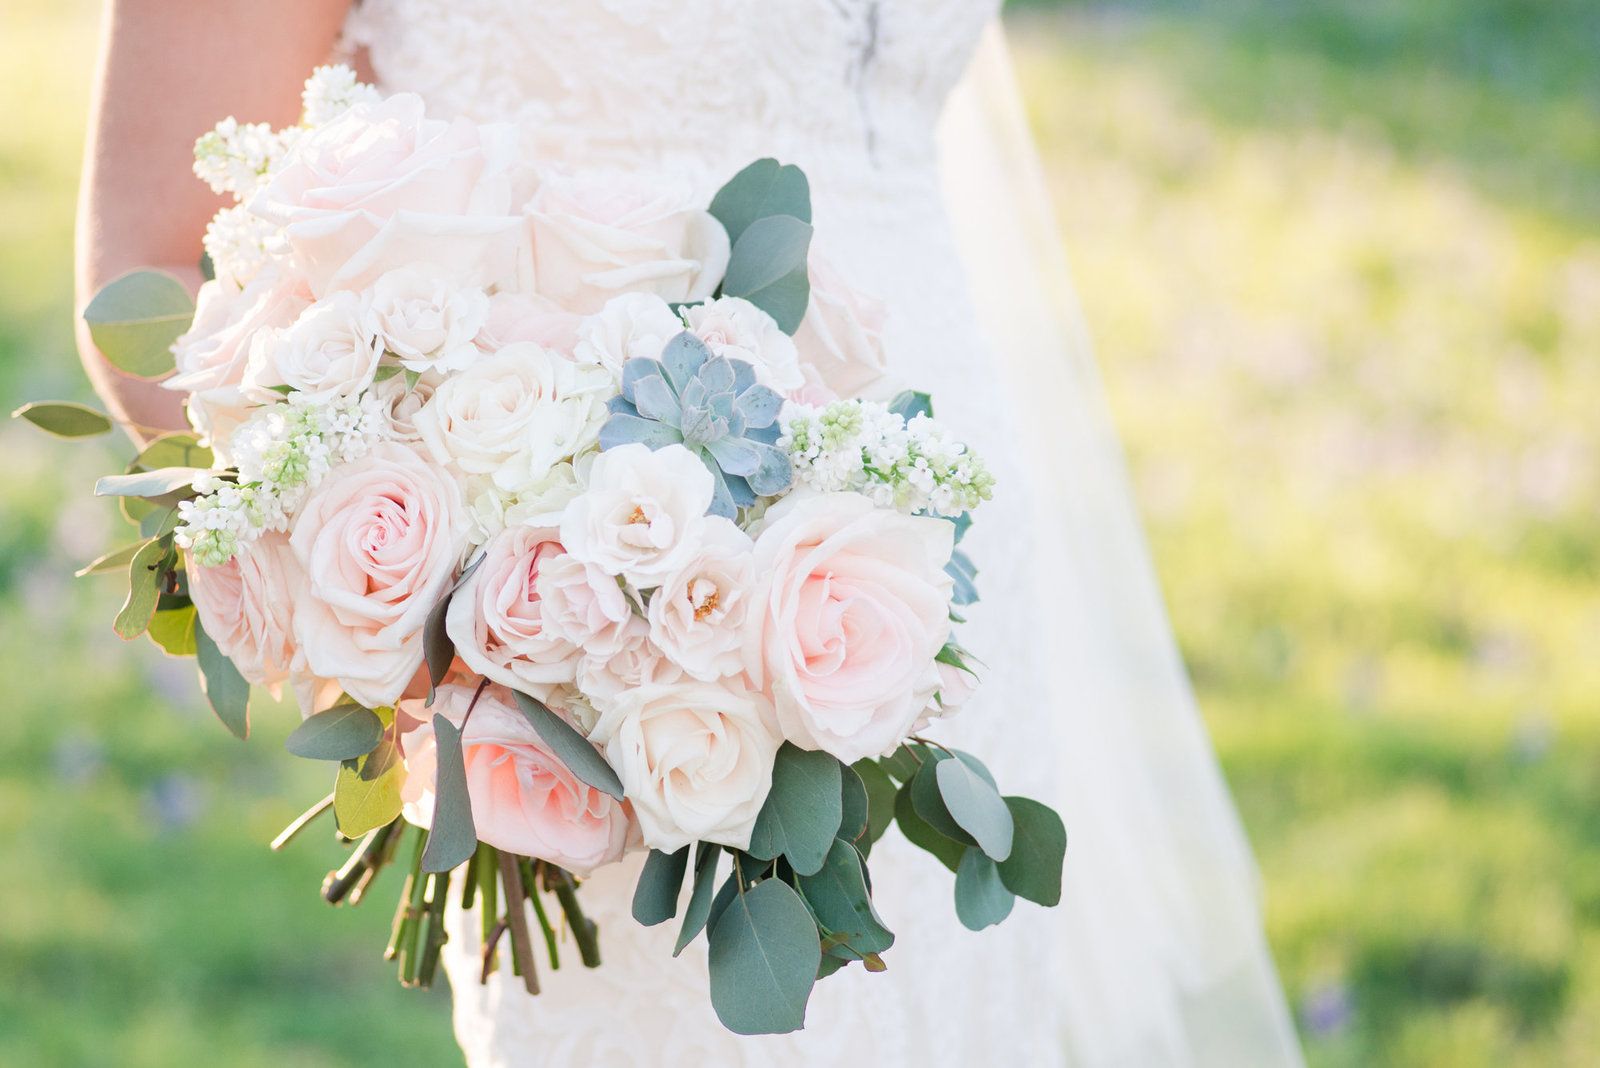 Bridal Bouquet in blush and cream with succulents by Sixpence Floral, austin wedding florist